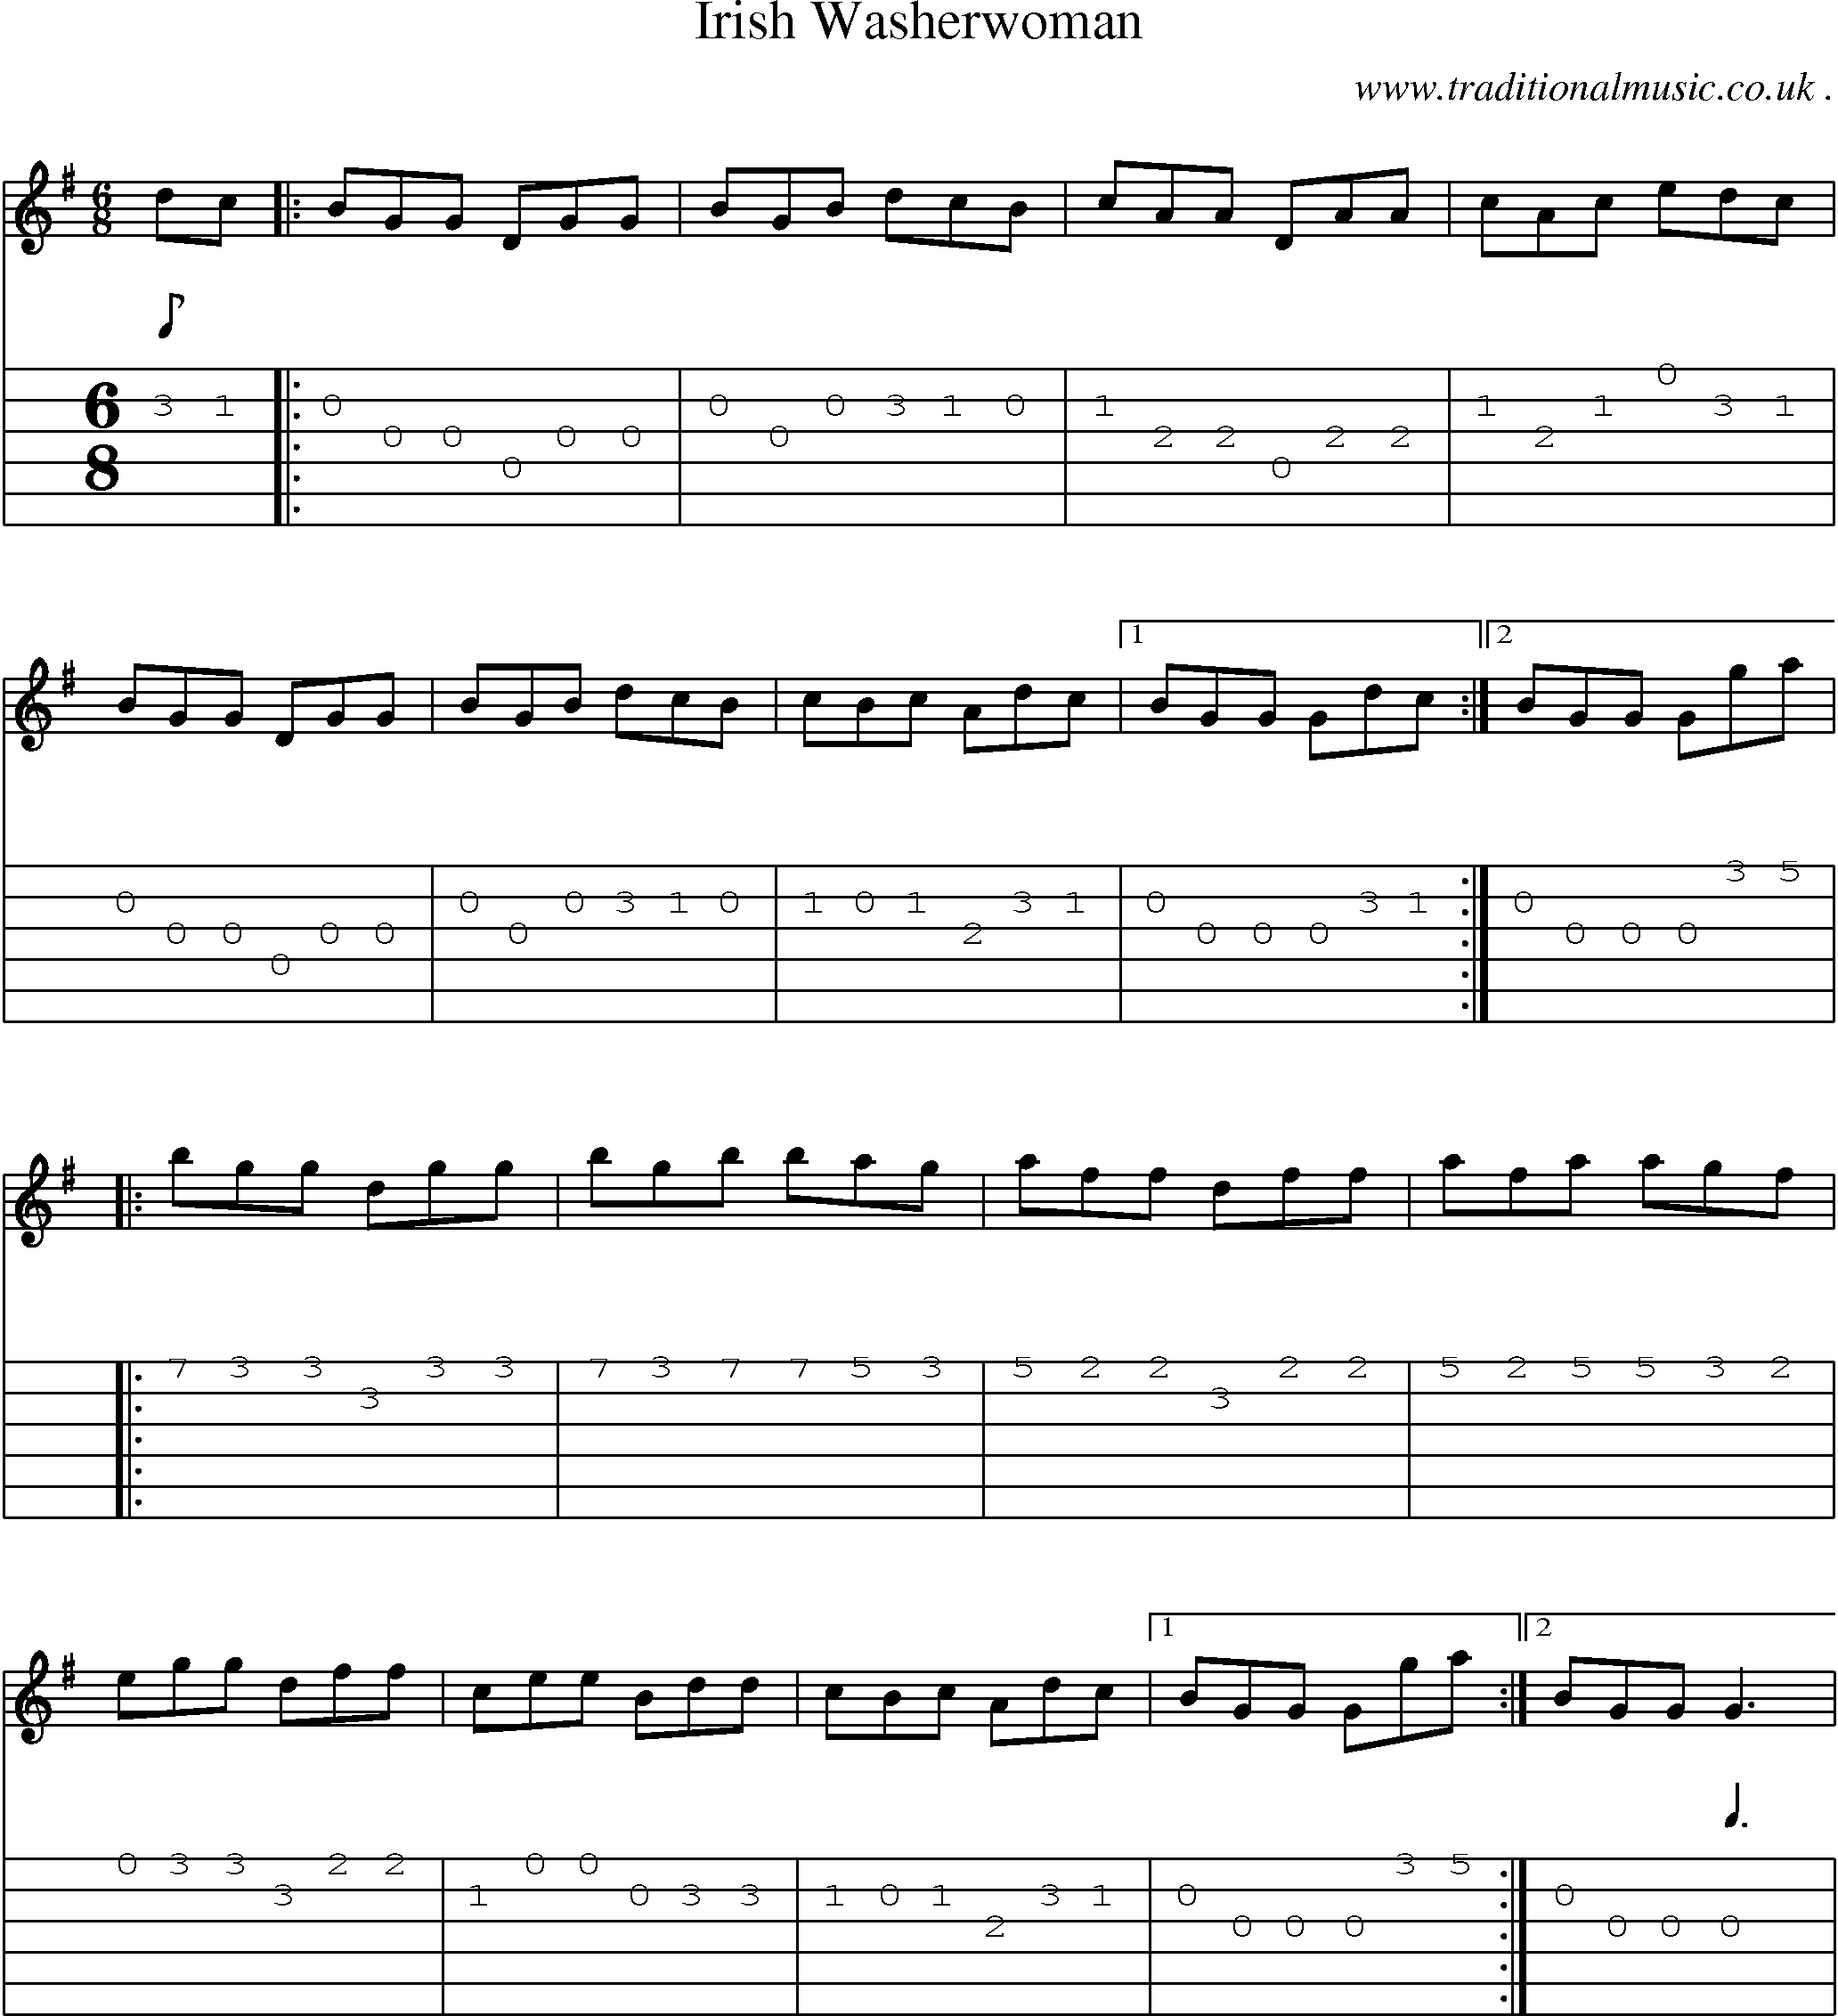 Guitar Chords And Lyrics For Beginners Irish Songs: Music Score And Guitar Tabs For Irish Washerwoman